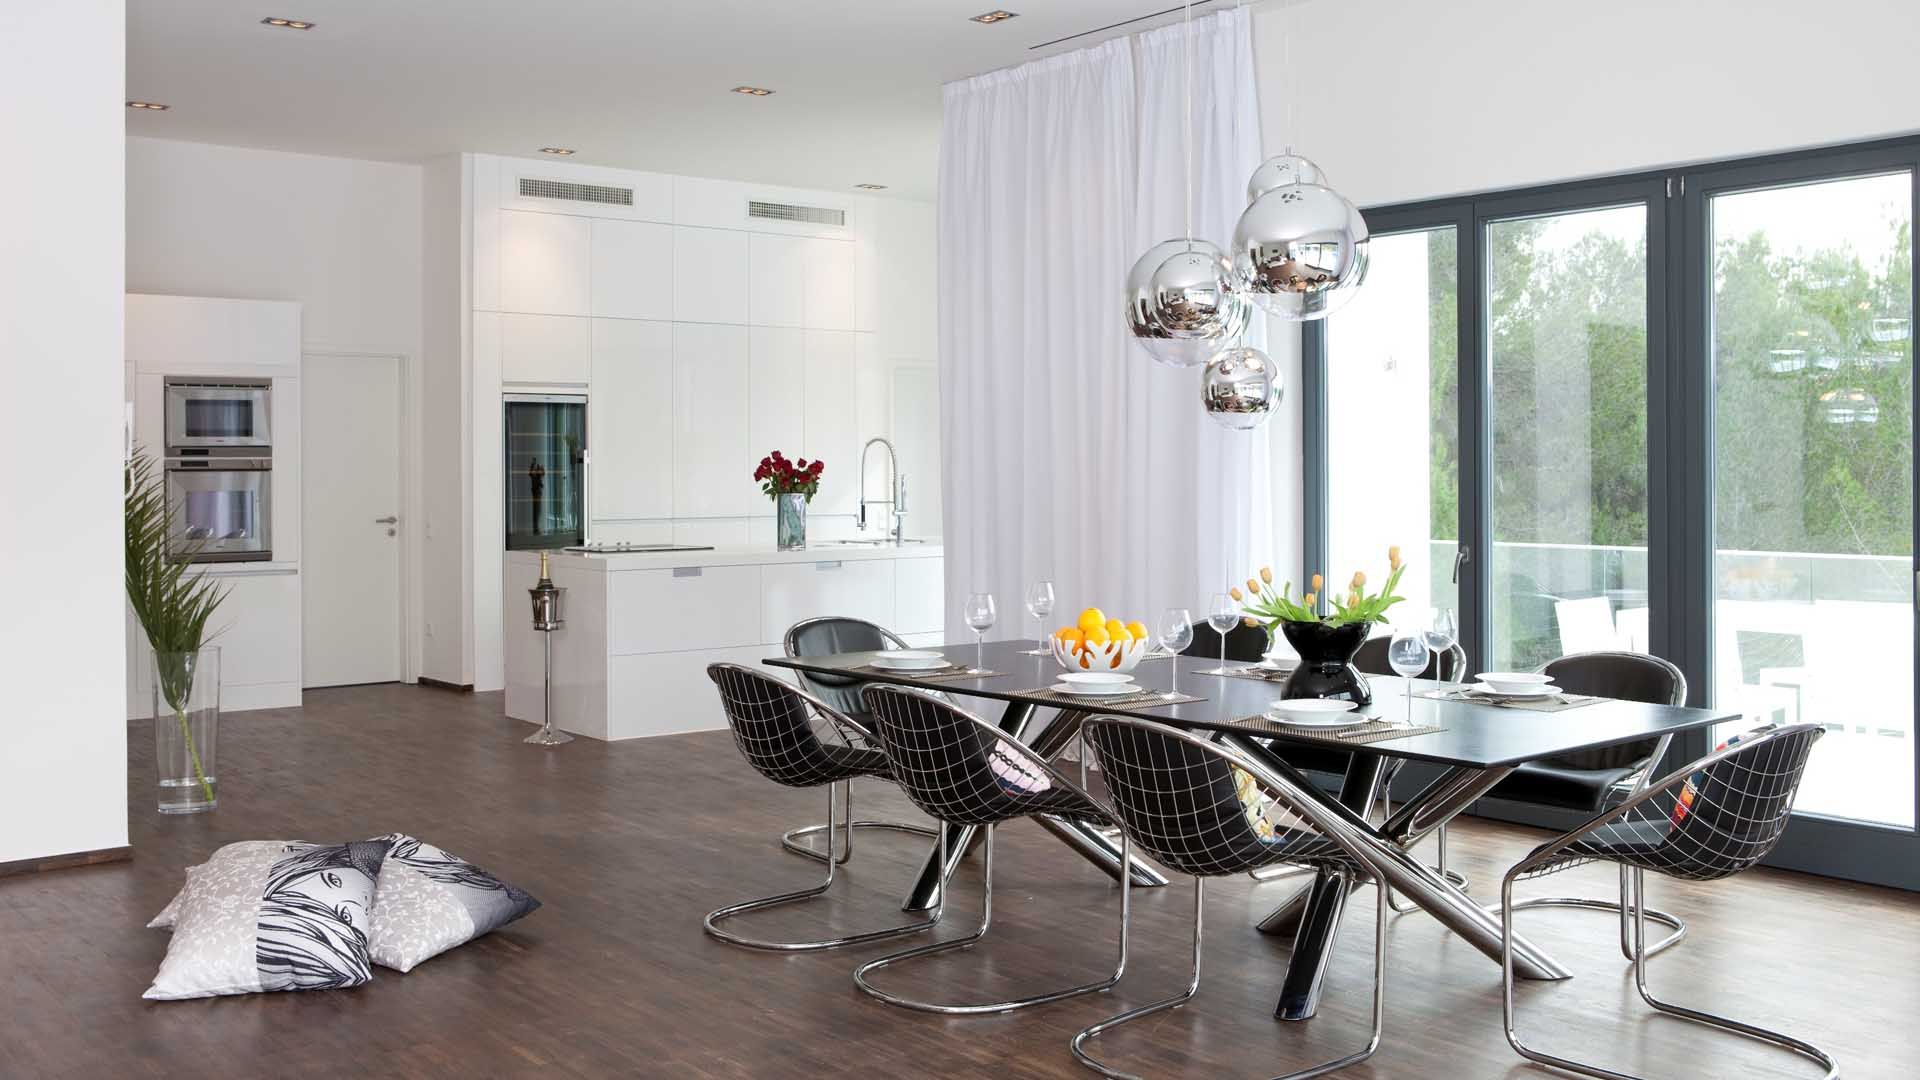 Modern black and white dining room - Astonishing Triple Silver Balls Pendant Dining Light Over Long Modern Dining Table And Unique Chrome Base